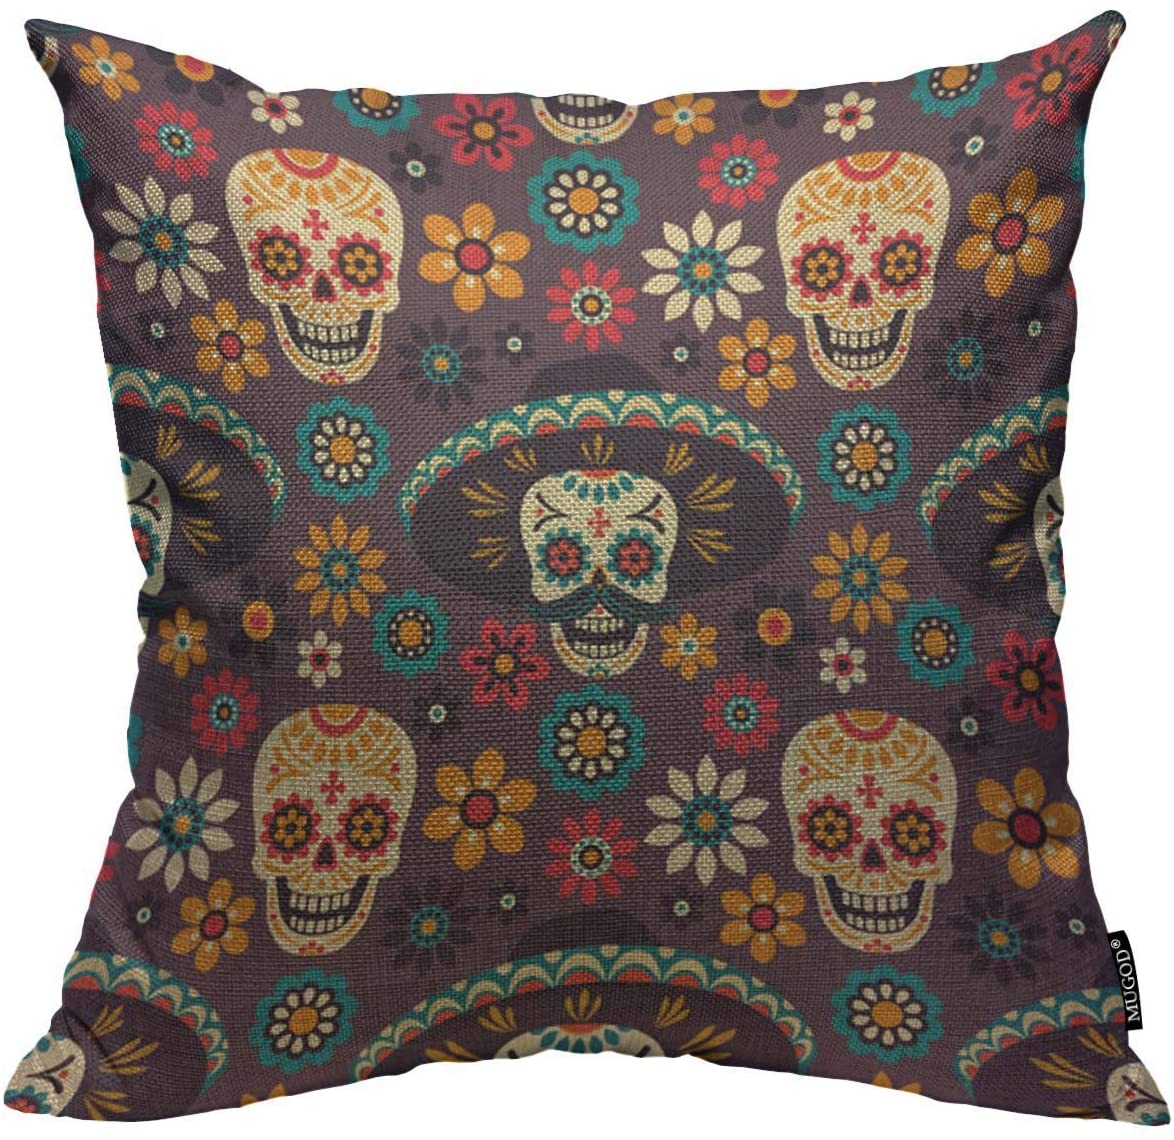 Mugod Day of The Dead Decoration Throw Pillow Cushion Covers Sugar Skulls and Flowers on Dark Background Decorator Funny Pillows for Sofa Fall Home Decor Couch Pillow Case 18 X 18 Inch